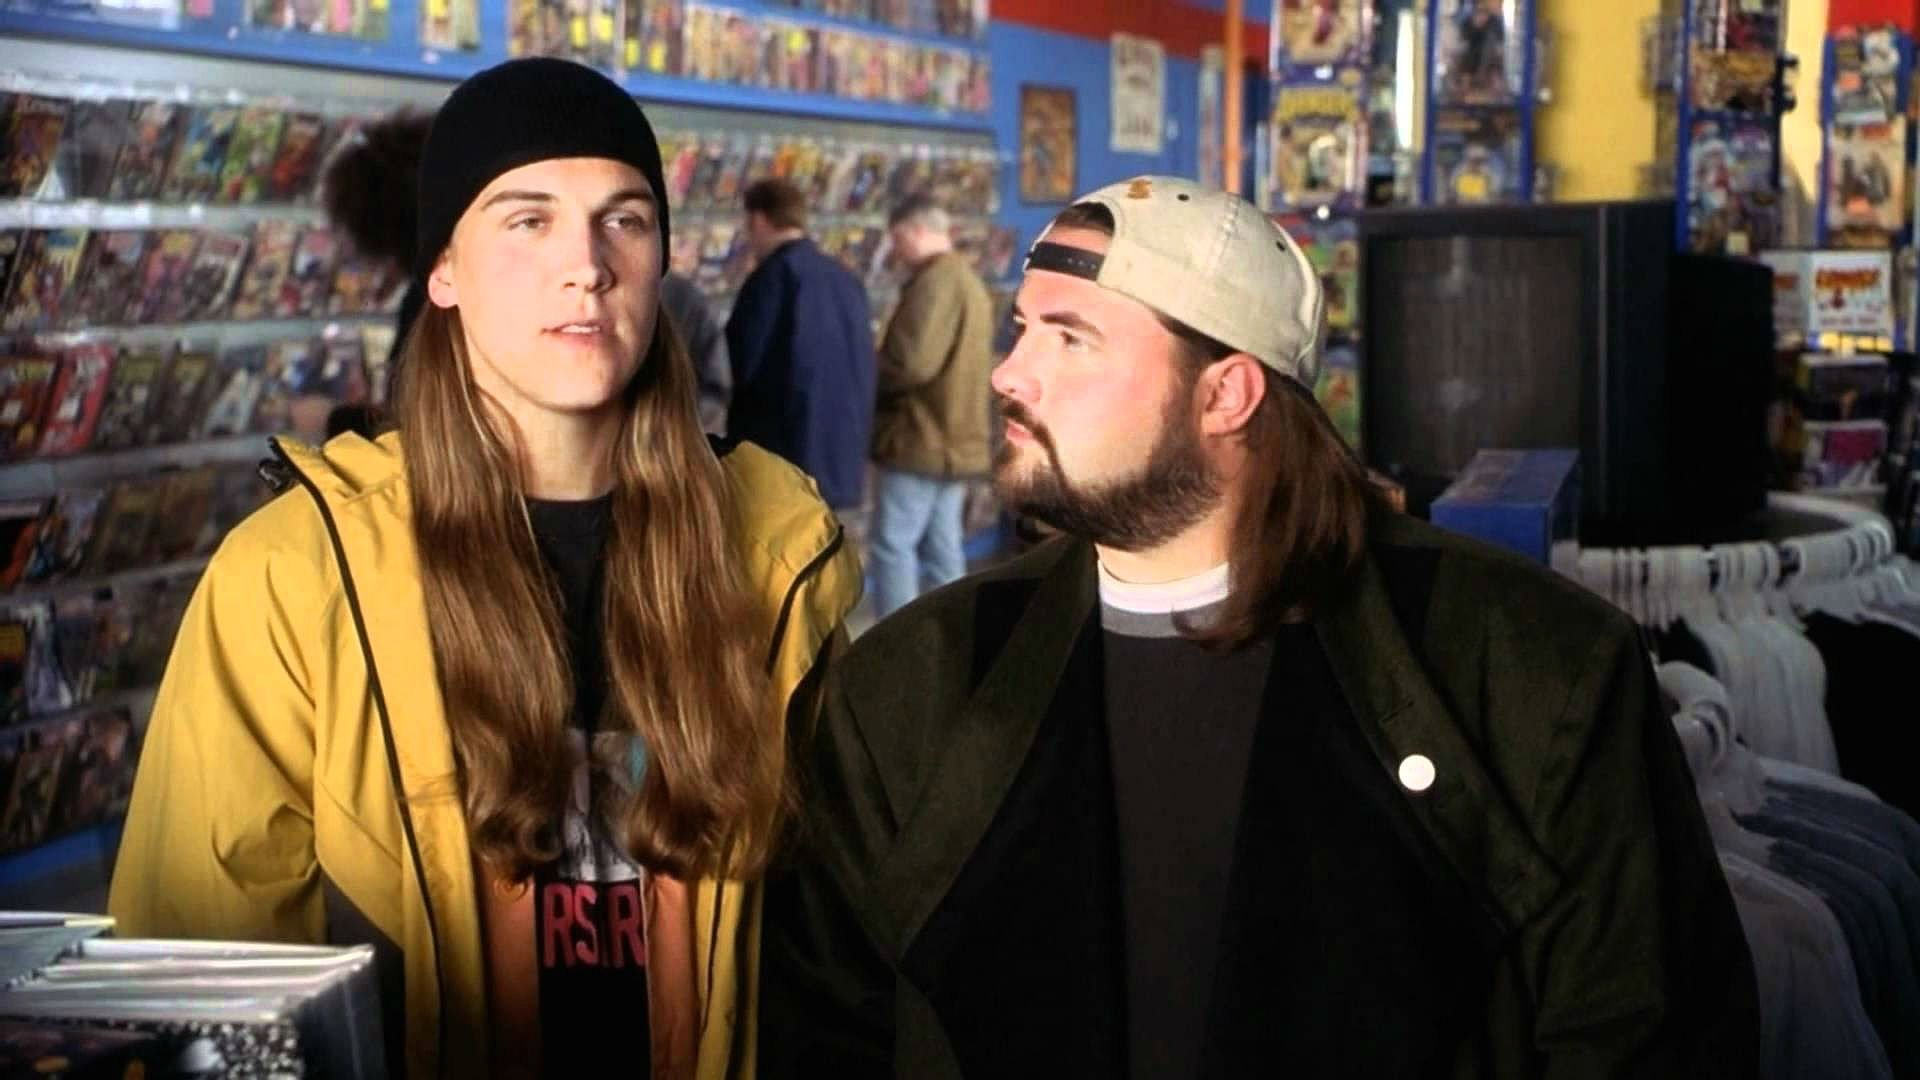 1920x1080 JAY SILENT BOB STRIKE BACK comedy humor funny wallpaper |  |  430989 | WallpaperUP